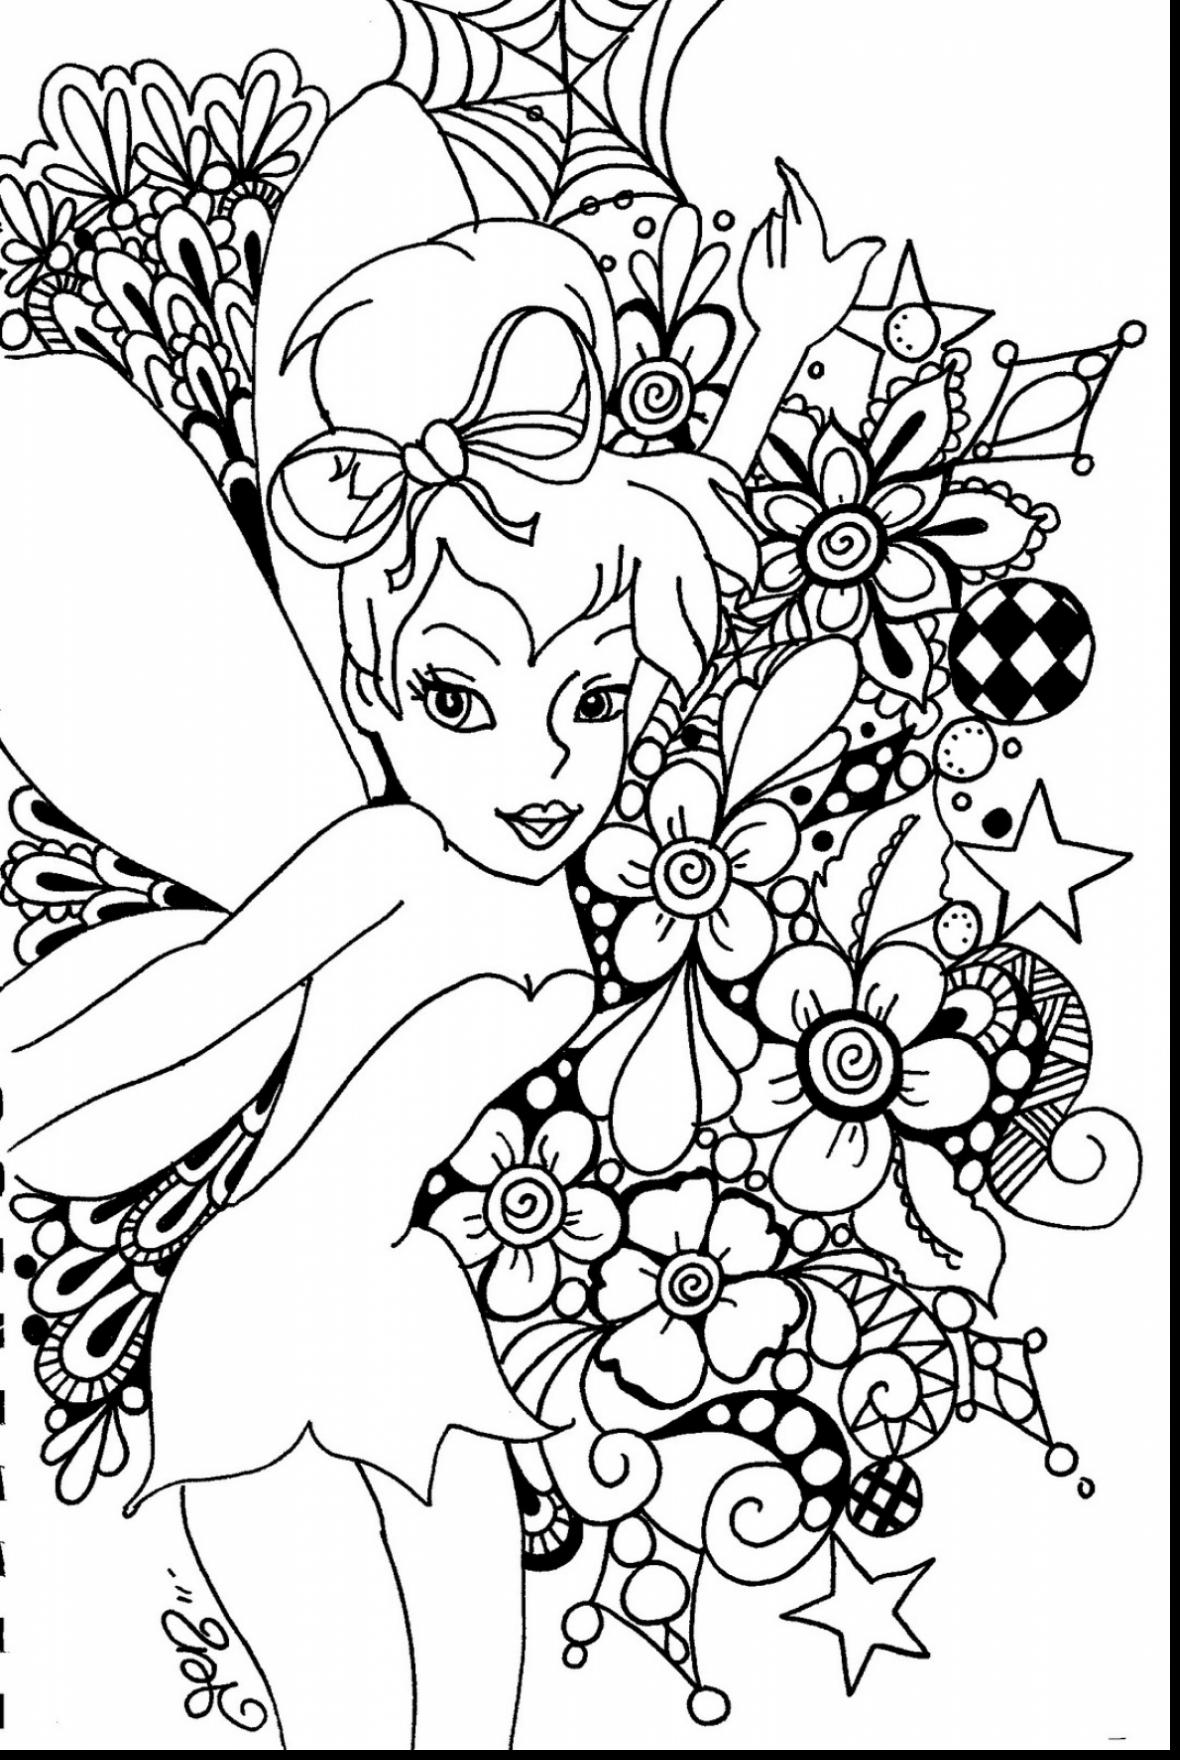 1180x1760 Amazing Tinkerbell Coloring Pages With Fairy For Adults And Goth